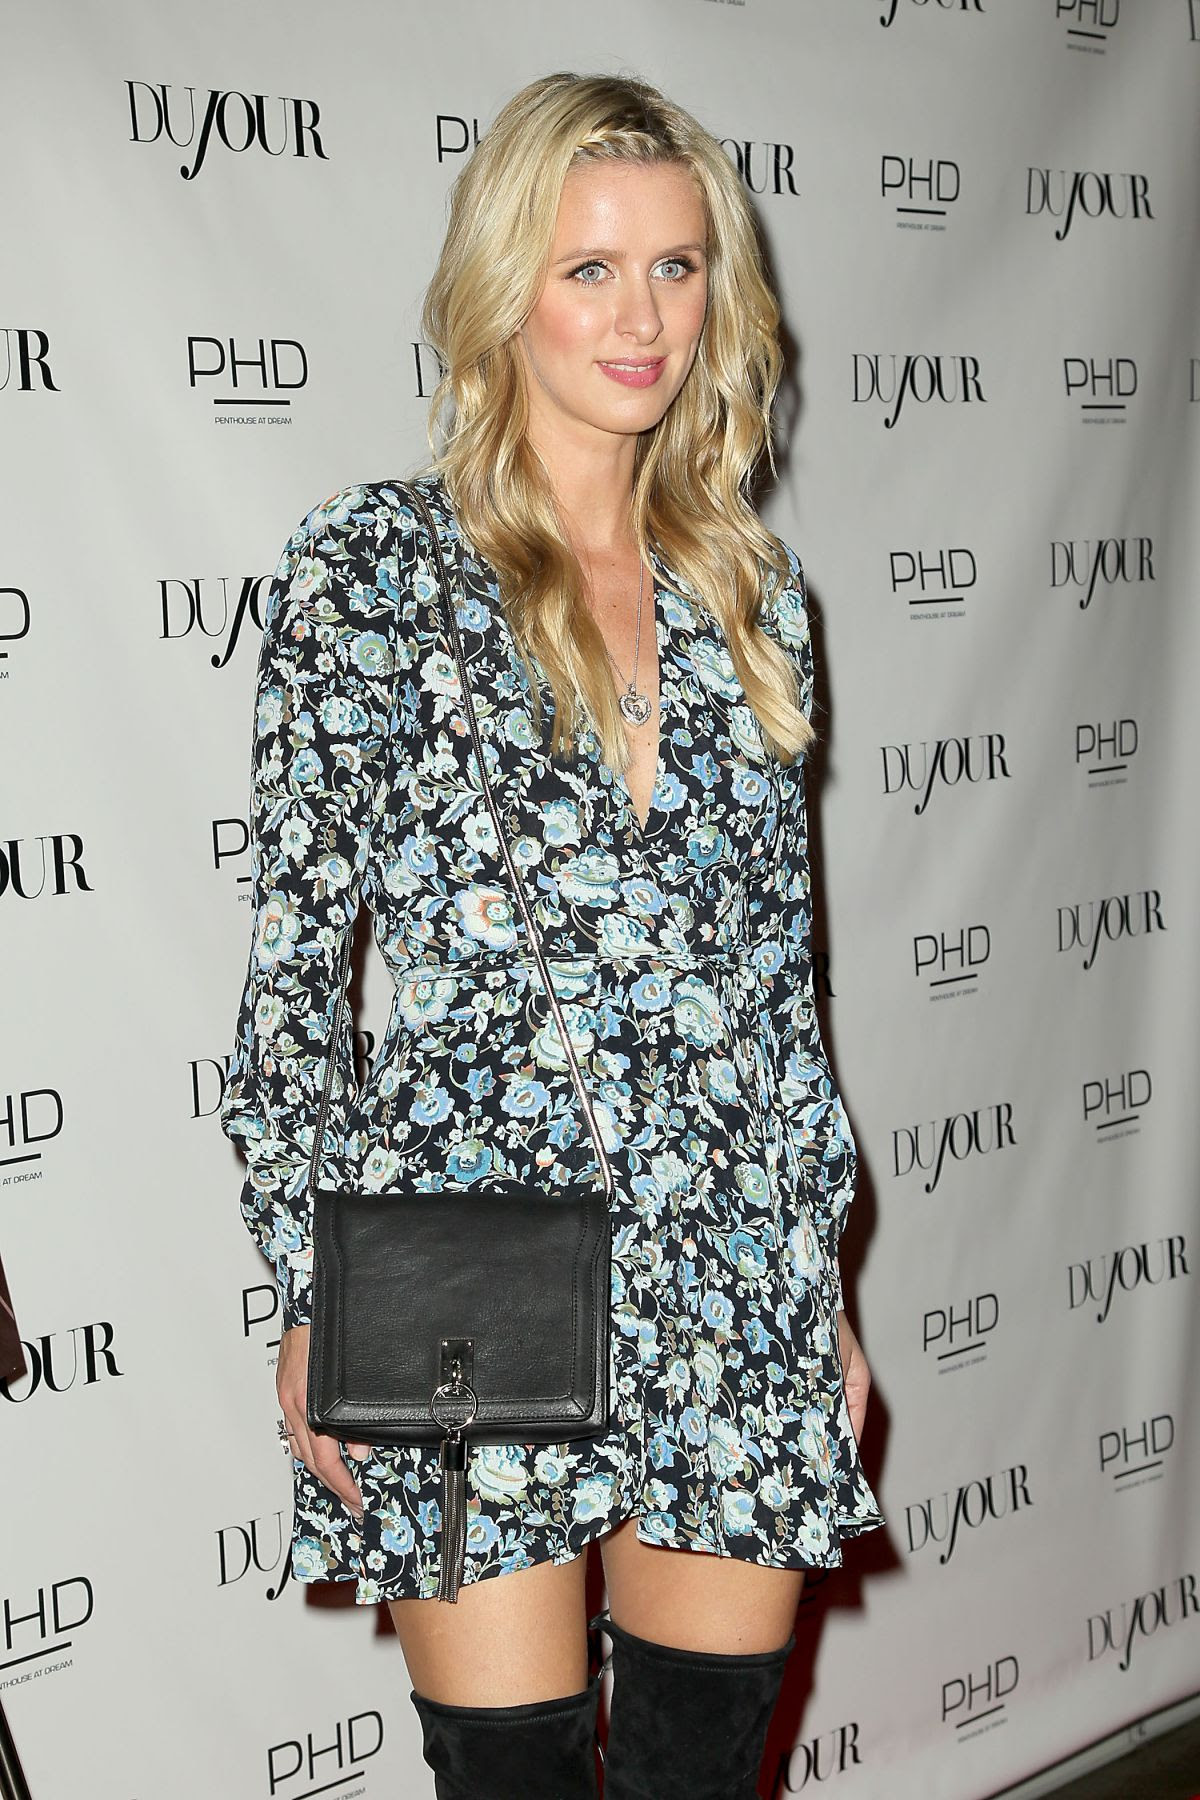 NICKY HILTON at Dujour Magazine's April Cover Celebration in New York